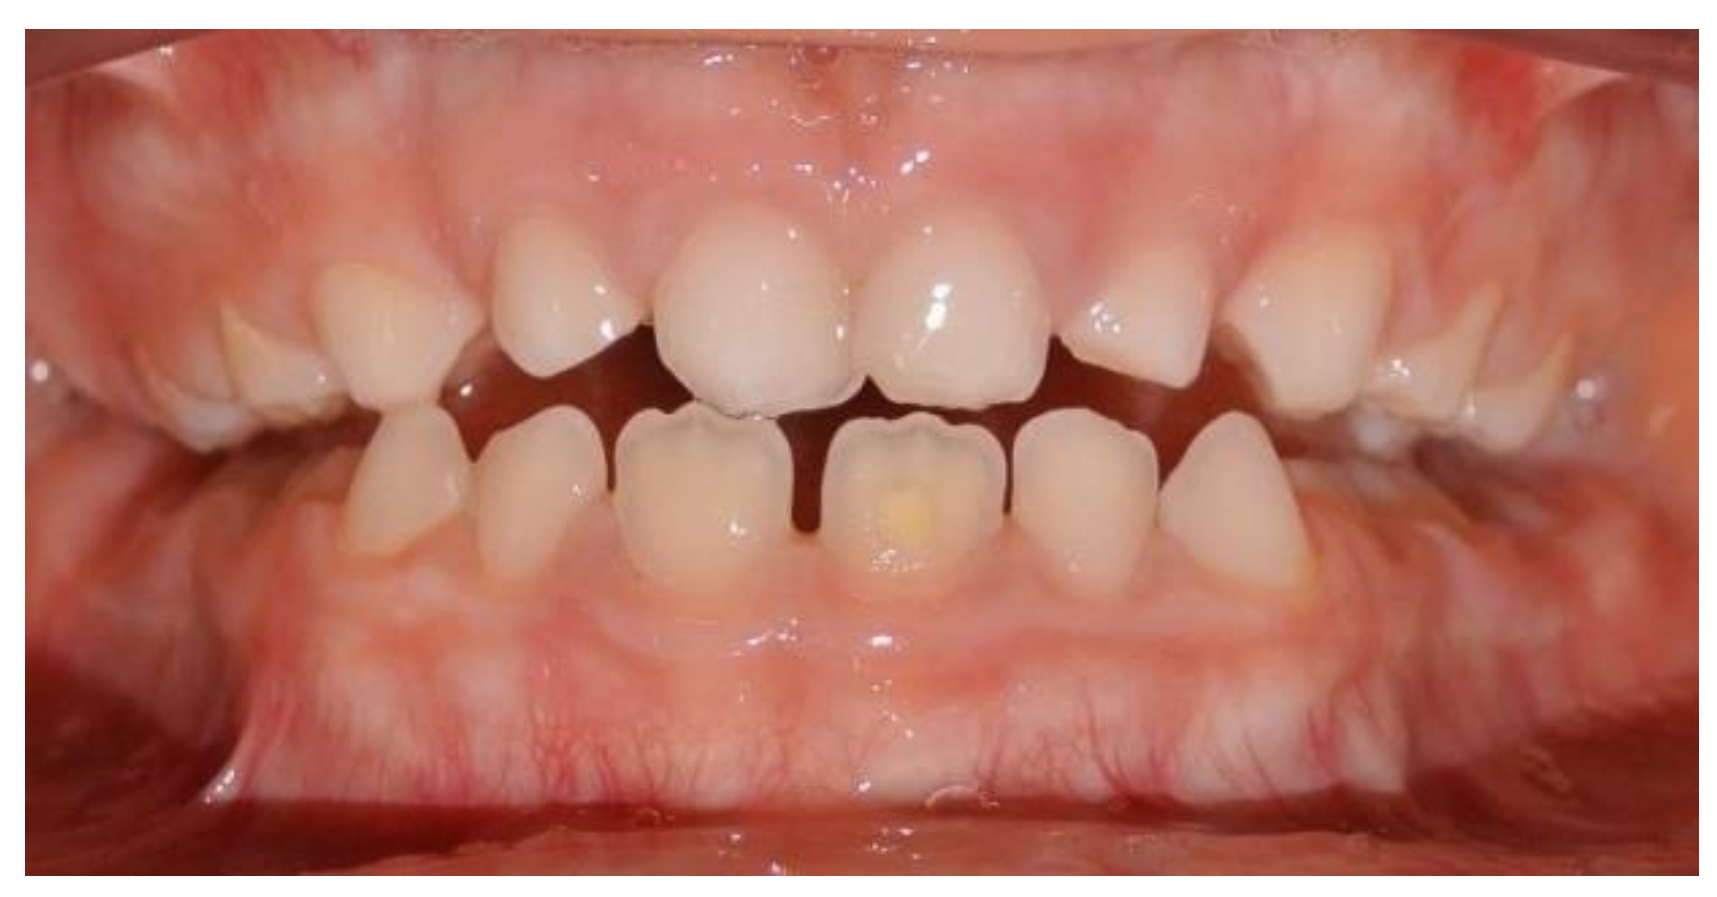 Ijerph Free Full Text Early Treatment Of Anterior Crossbite